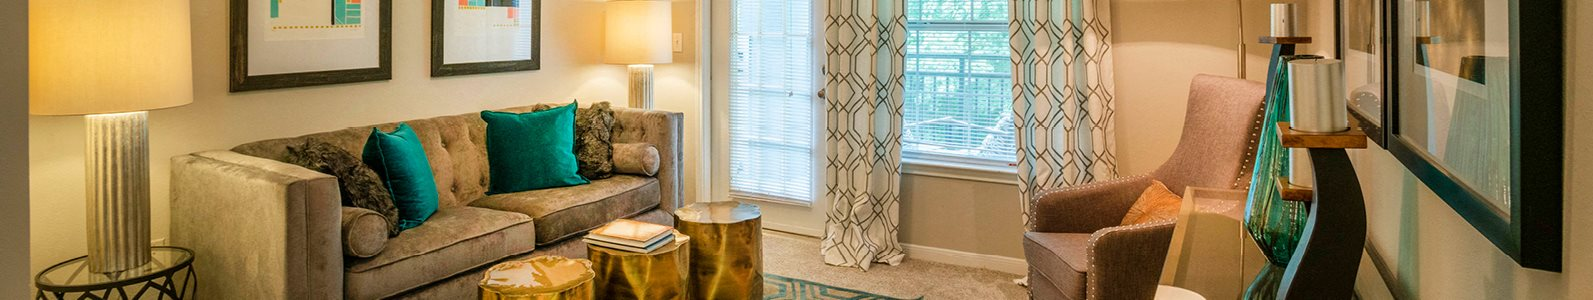 Open Floor Plan Homes with Wood Plank Vinyl Flooring (in Select Units) at Merritt at Sugarloaf Apartment Homes, Duluth, GA 30096